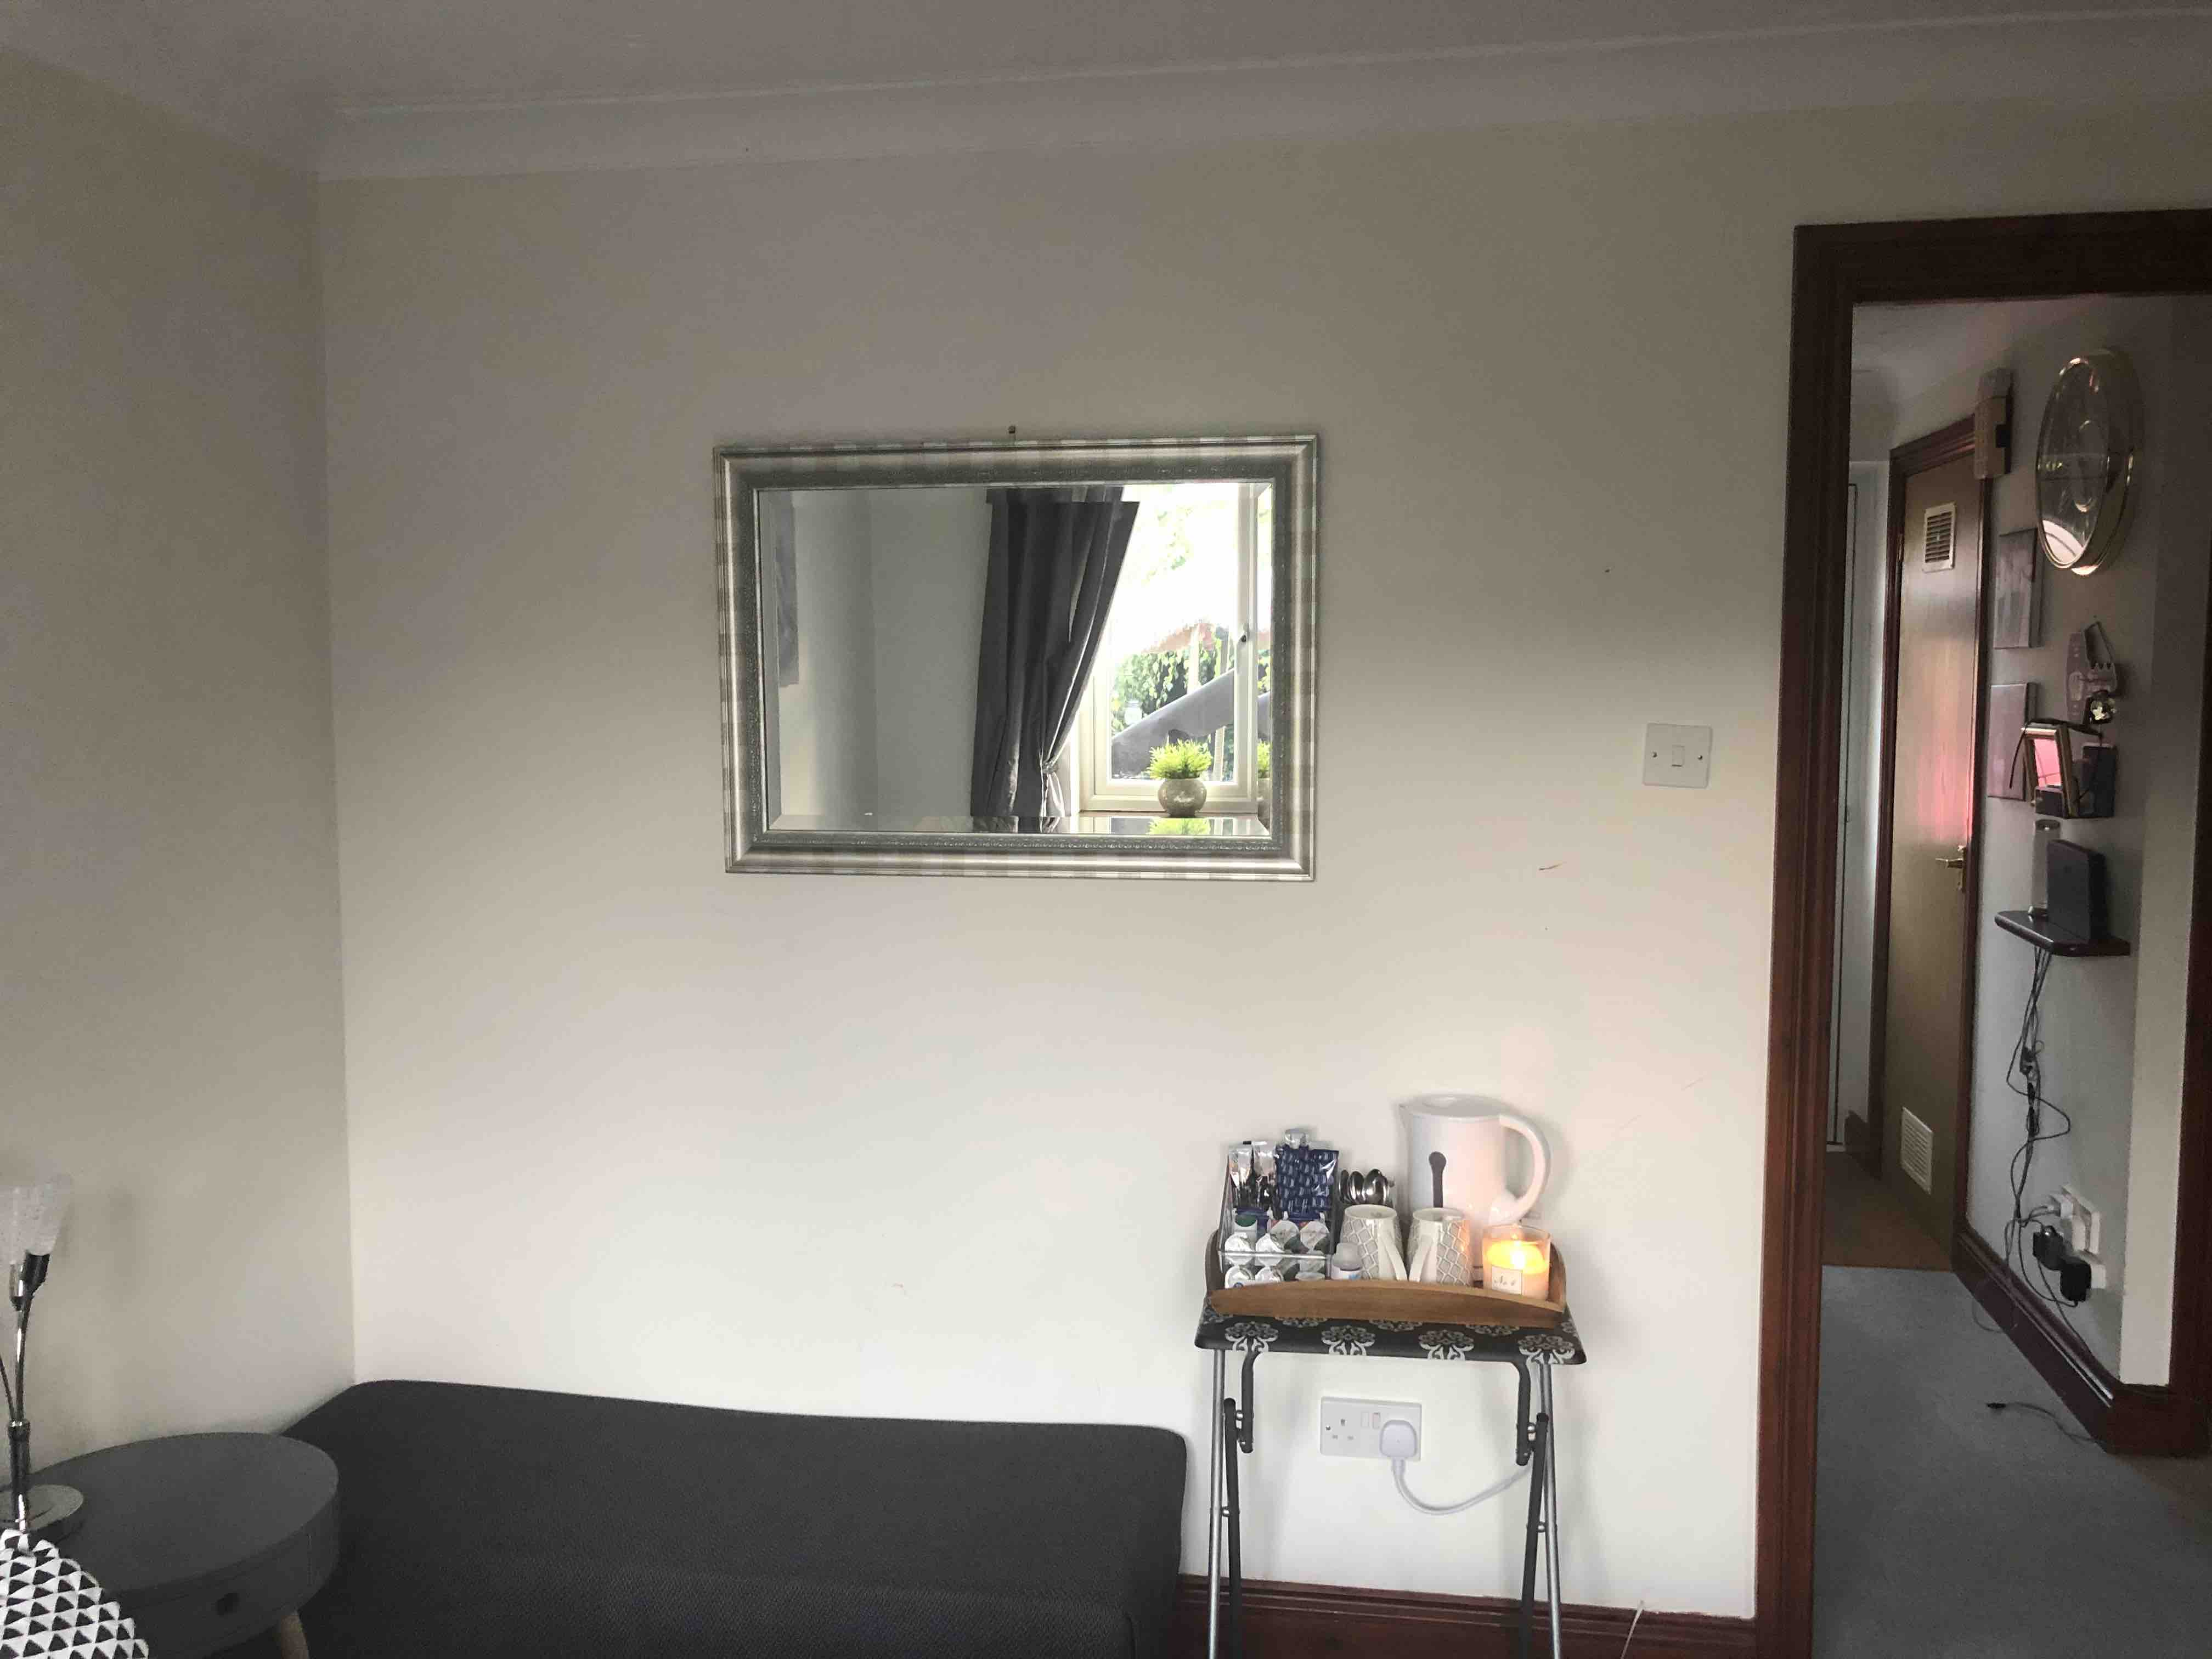 1 room in Winslow, Winslow, MK18 3QH RoomsLocal image